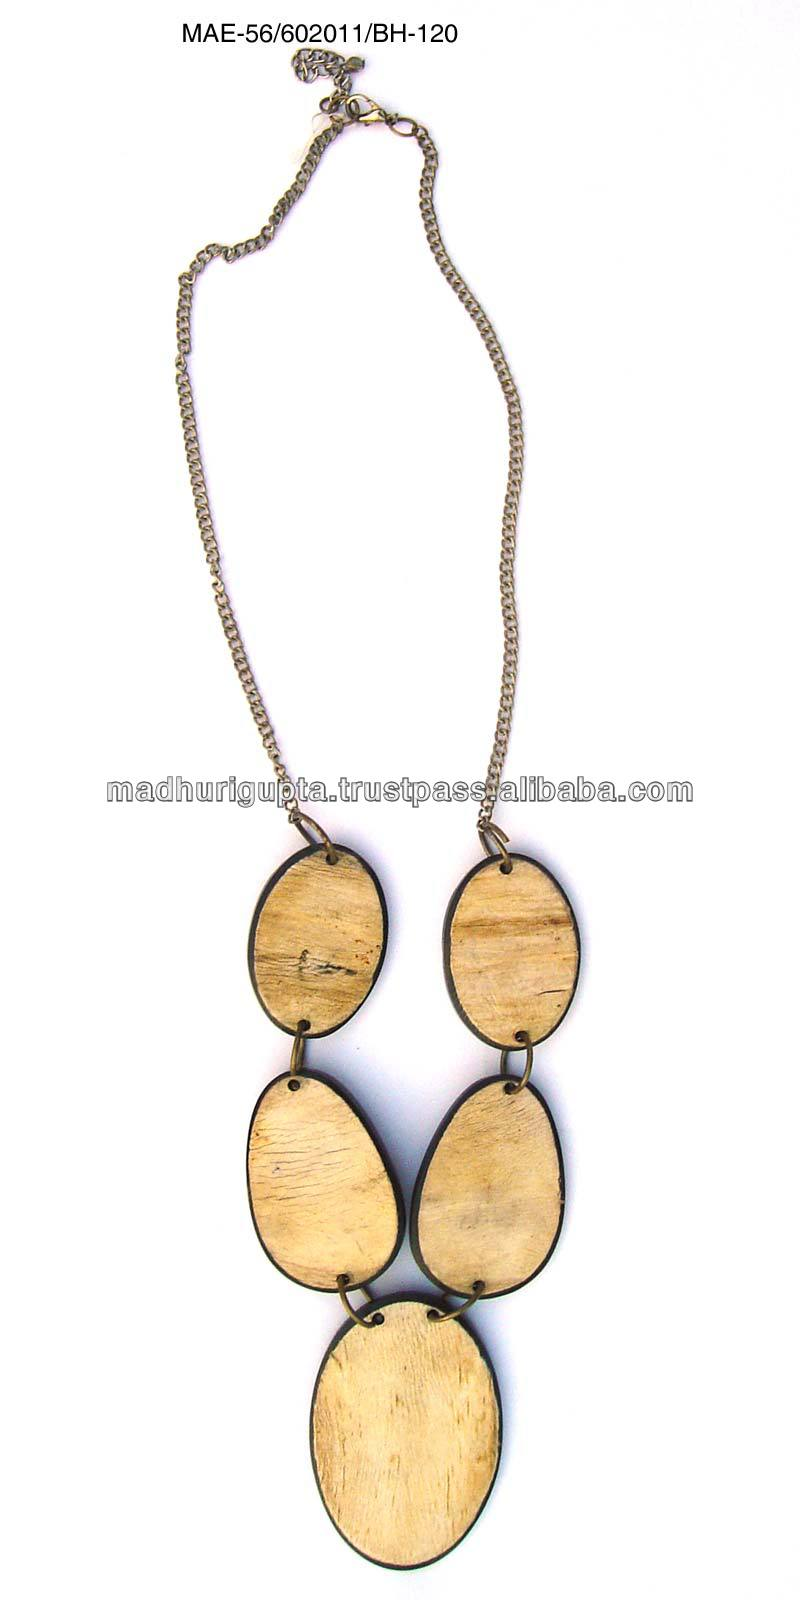 Ellipse Shape Wooden Beads Necklace in Brown & Black Colour